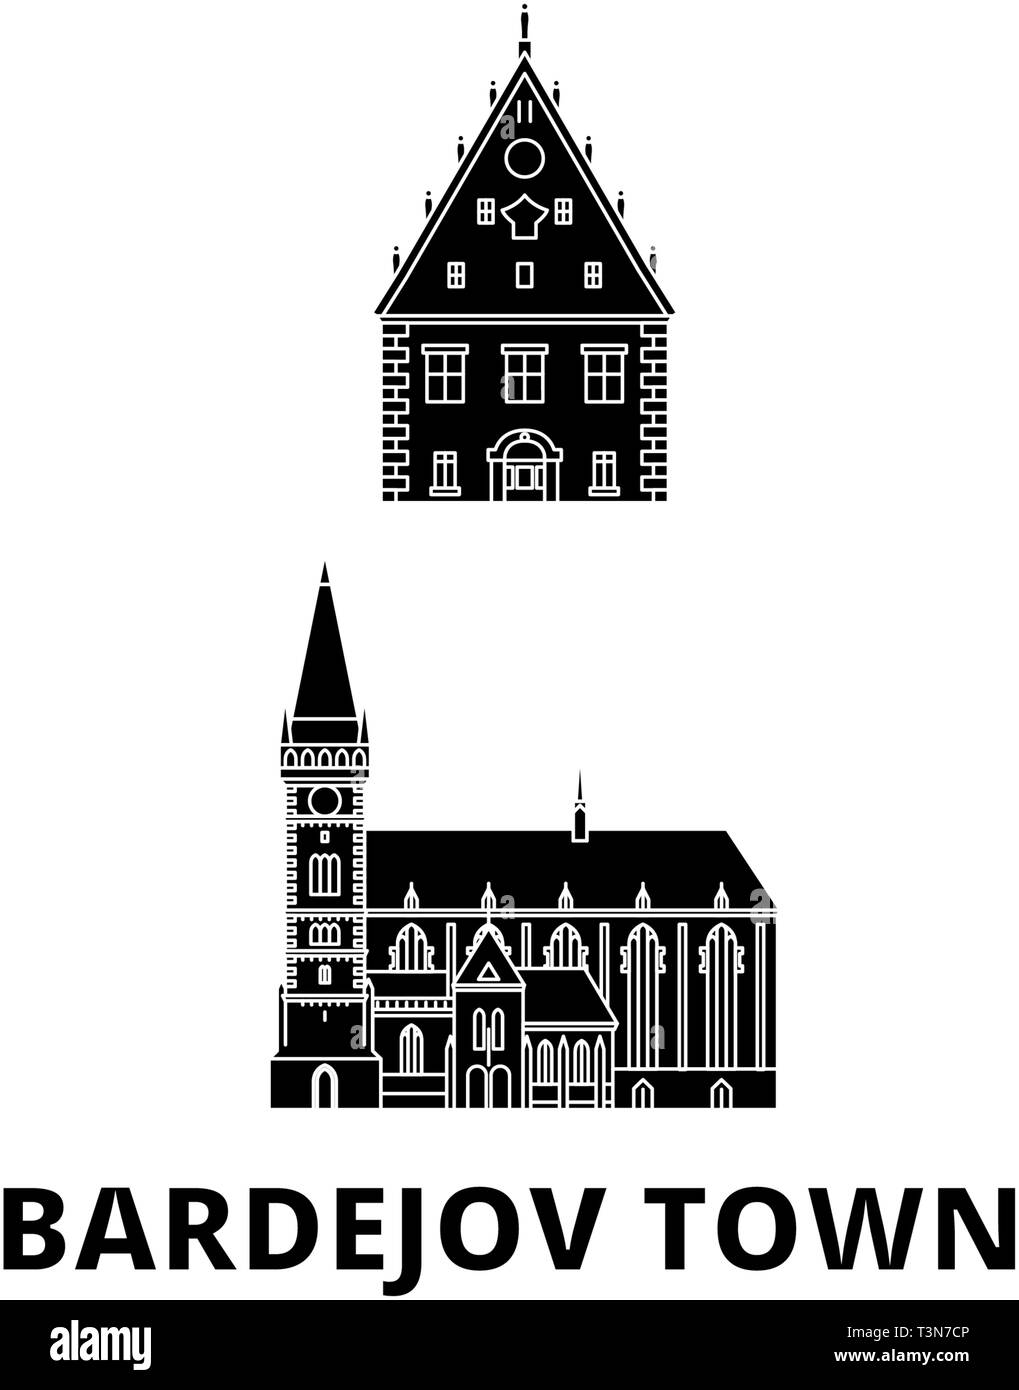 Slovakia, Bardejov Town flat travel skyline set. Slovakia, Bardejov Town black city vector illustration, symbol, travel sights, landmarks. - Stock Vector